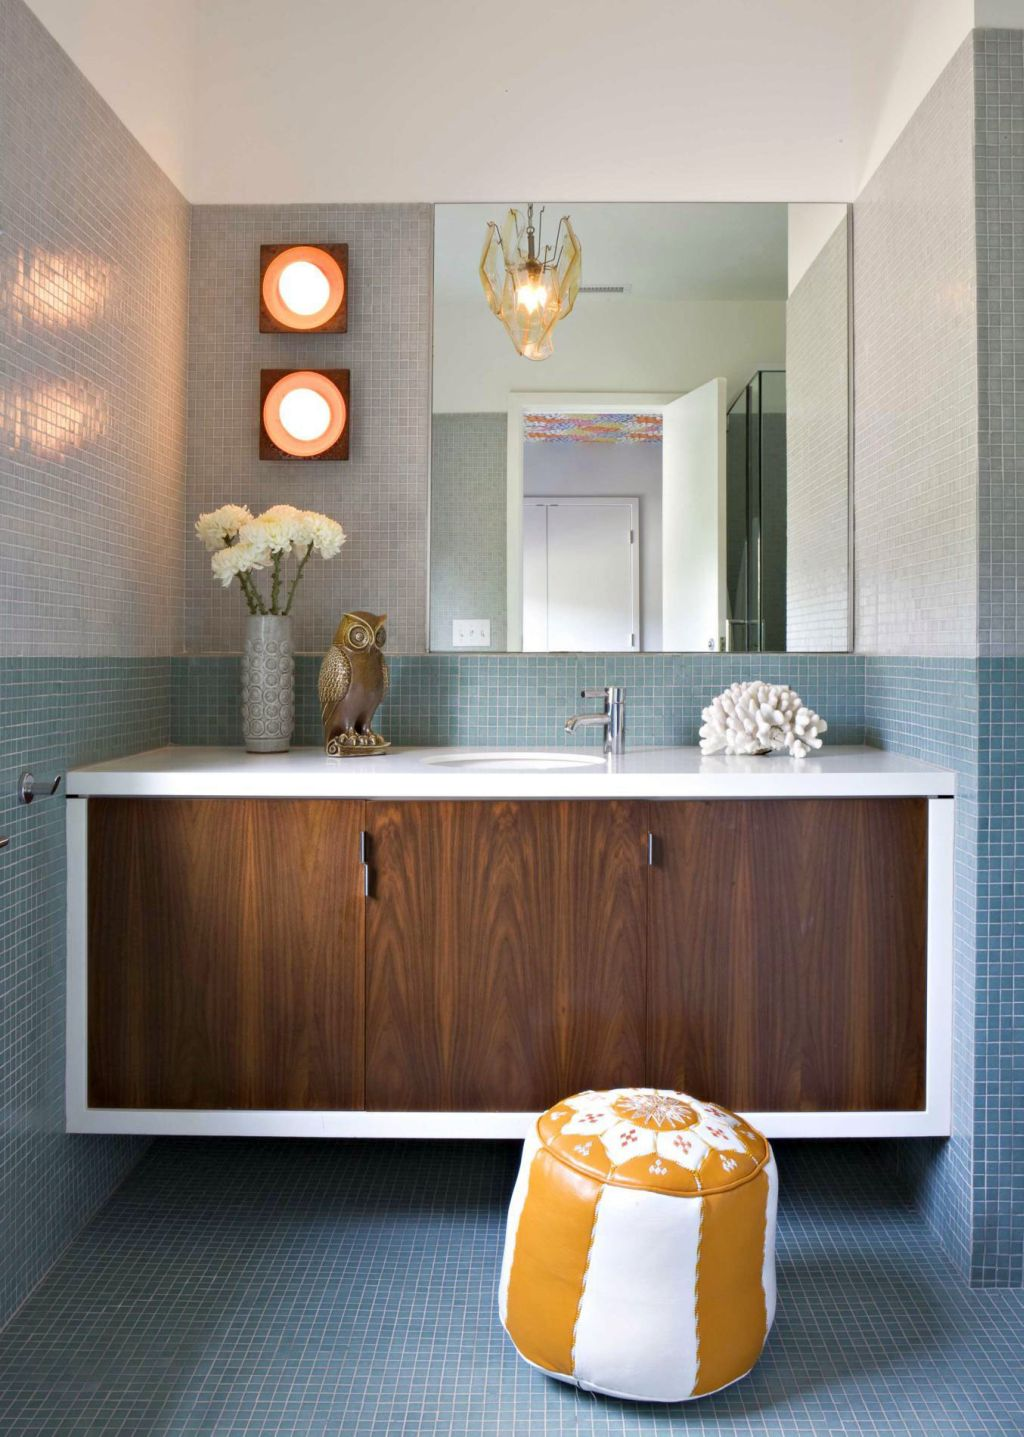 Creative Best Lighting Options For Your Bathroom  Ideas 4 Homes